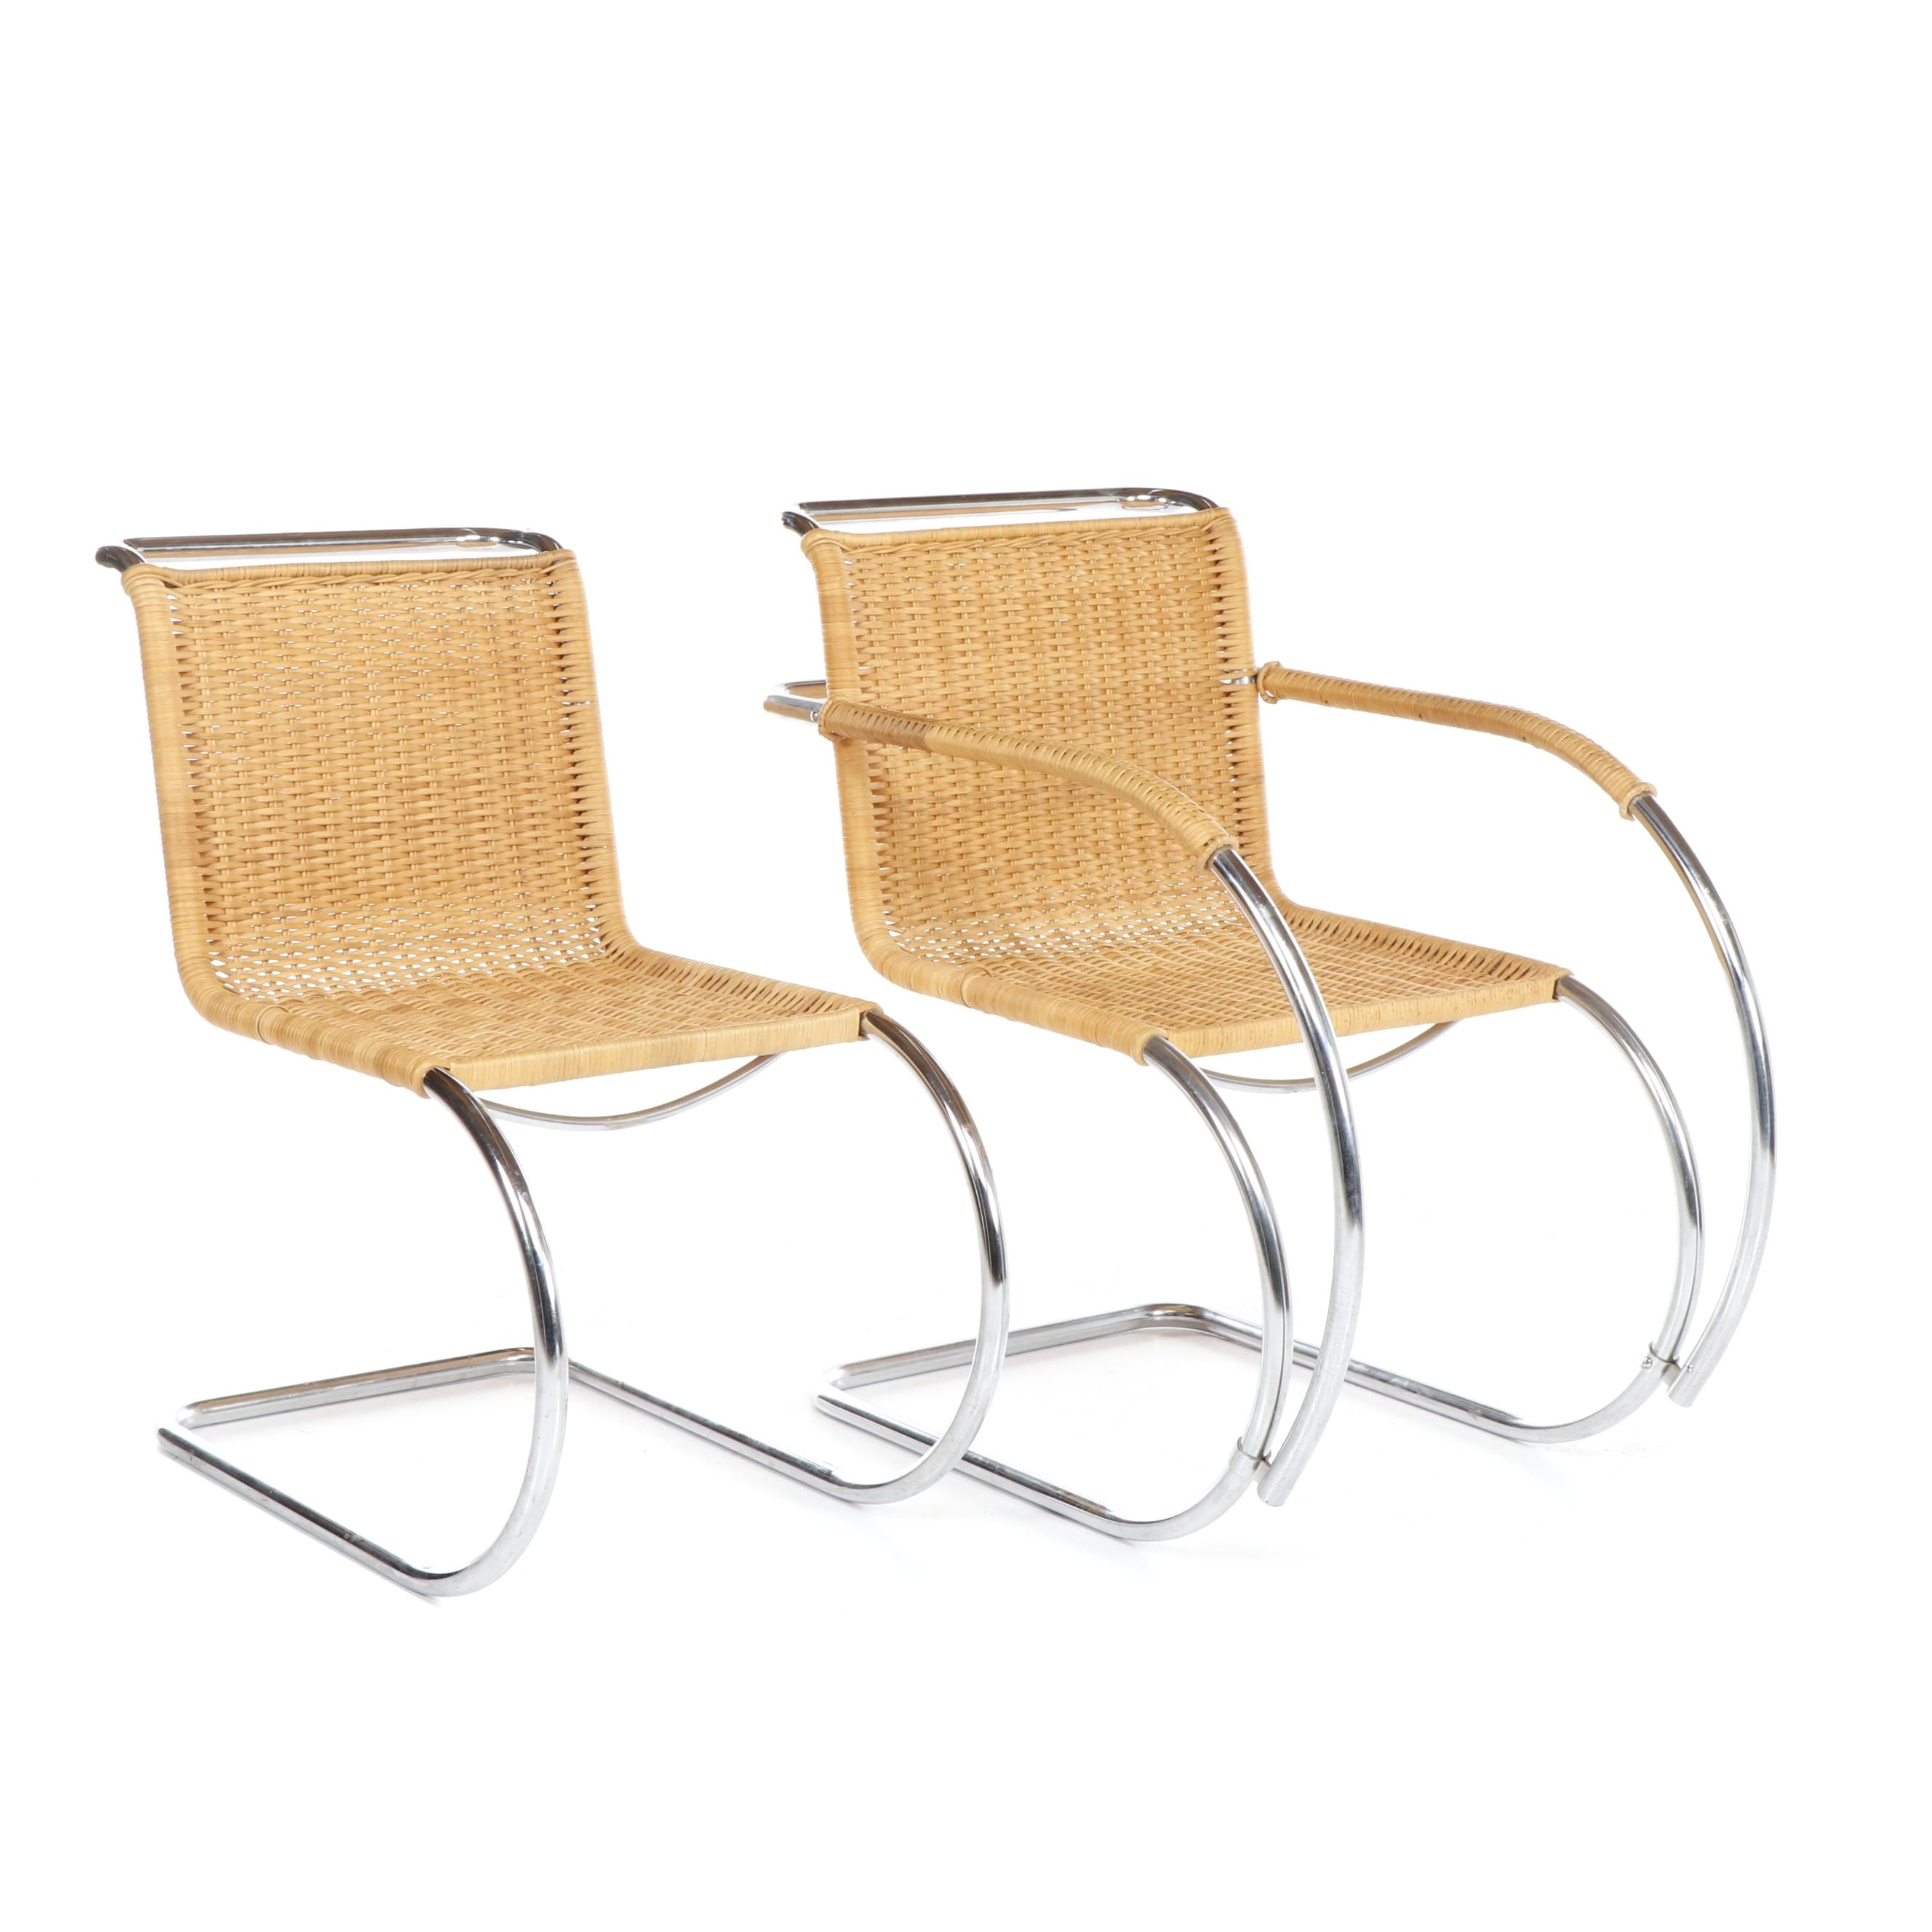 Bauhaus Style Cantilever Cane Chair and Armchair After Mies van der Rohe